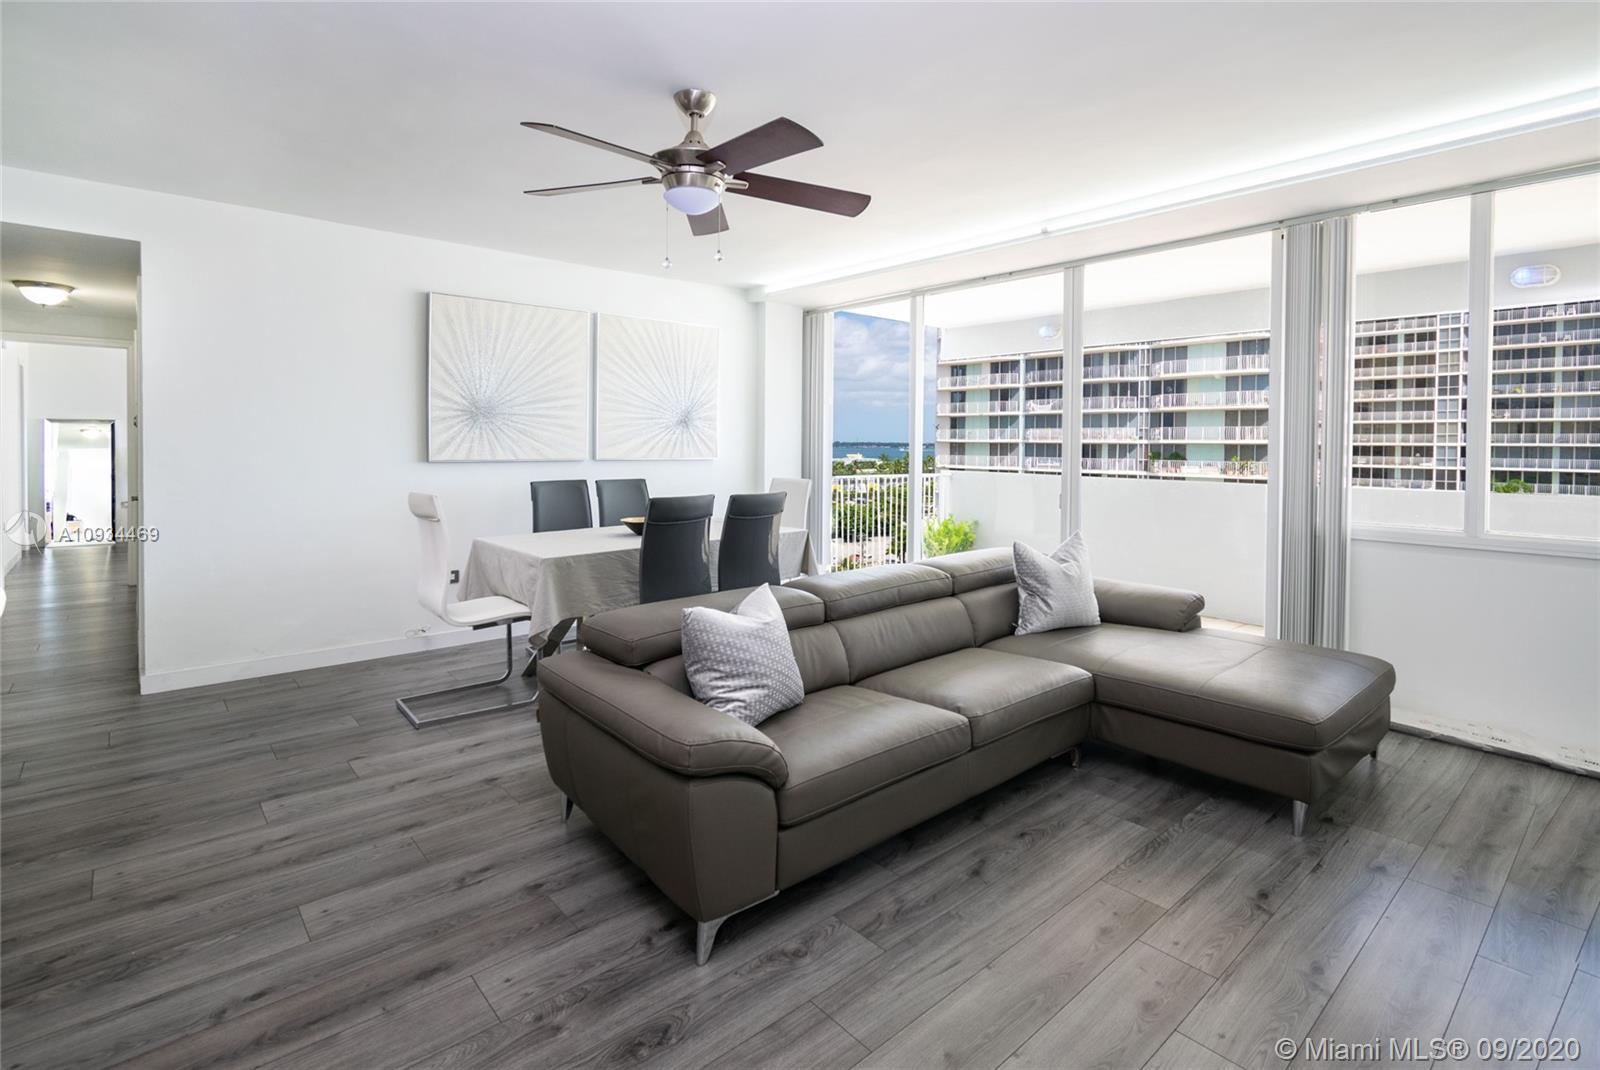 Amazing 2 bedrooms , 2 baths with beautiful view of the bay. Floor and bedrooms completely remodeled